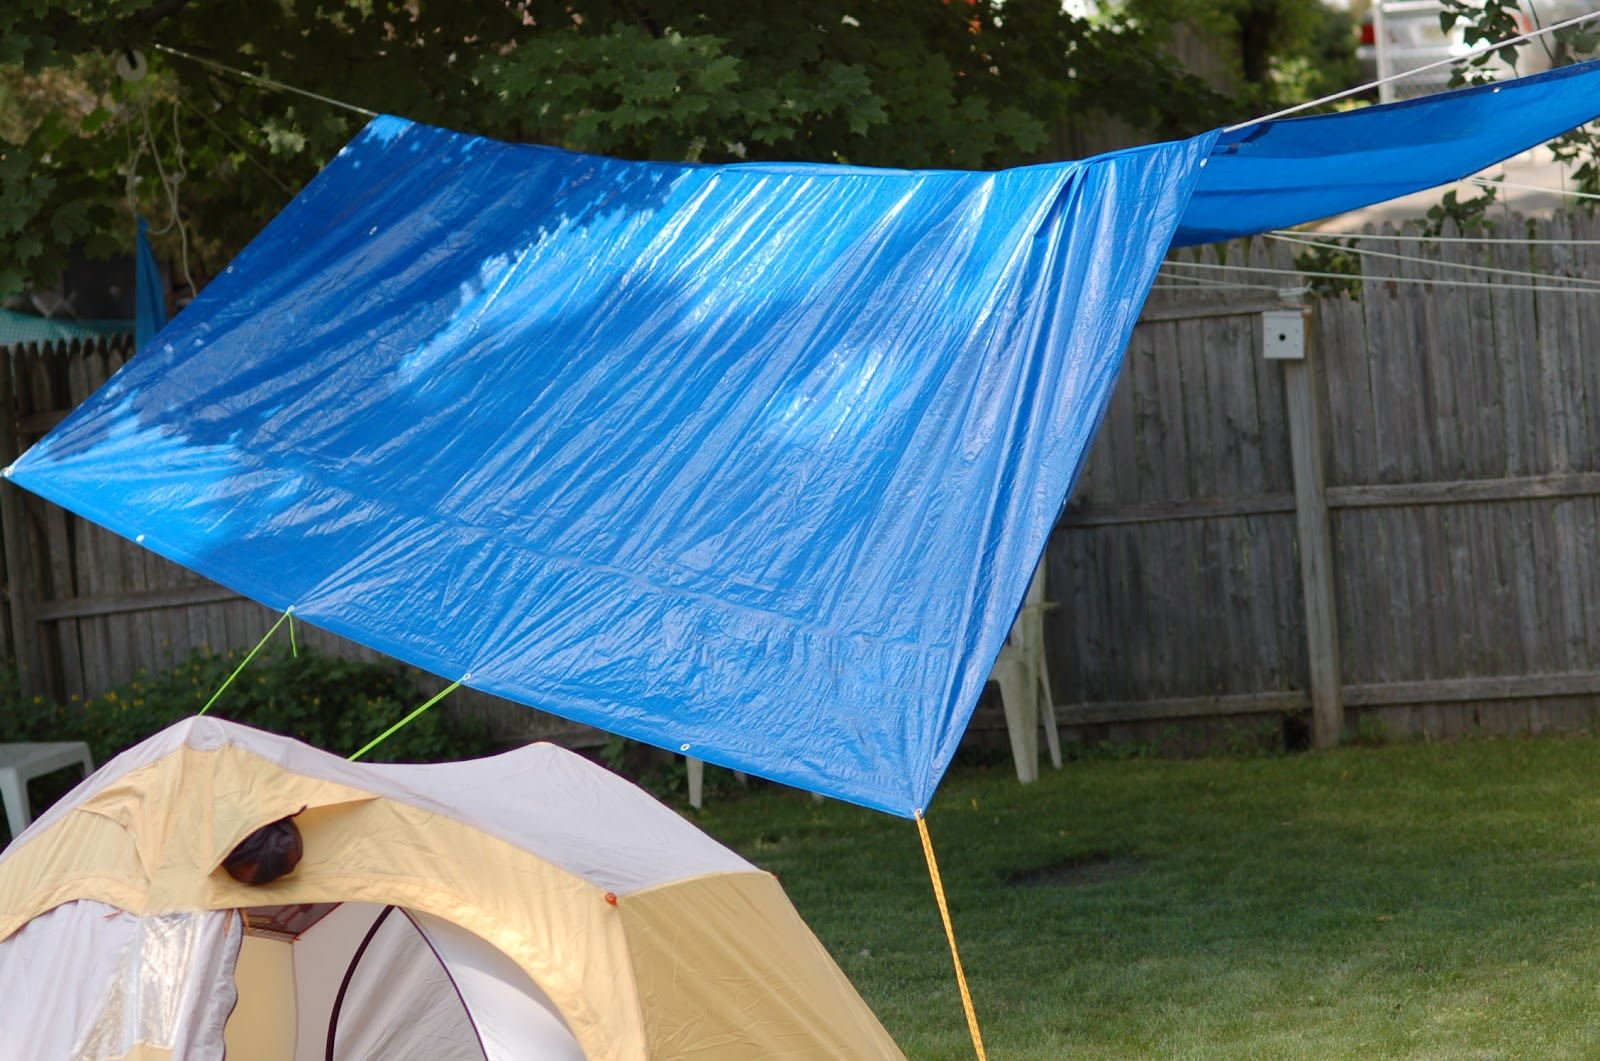 homemade tarp shelter images reverse search